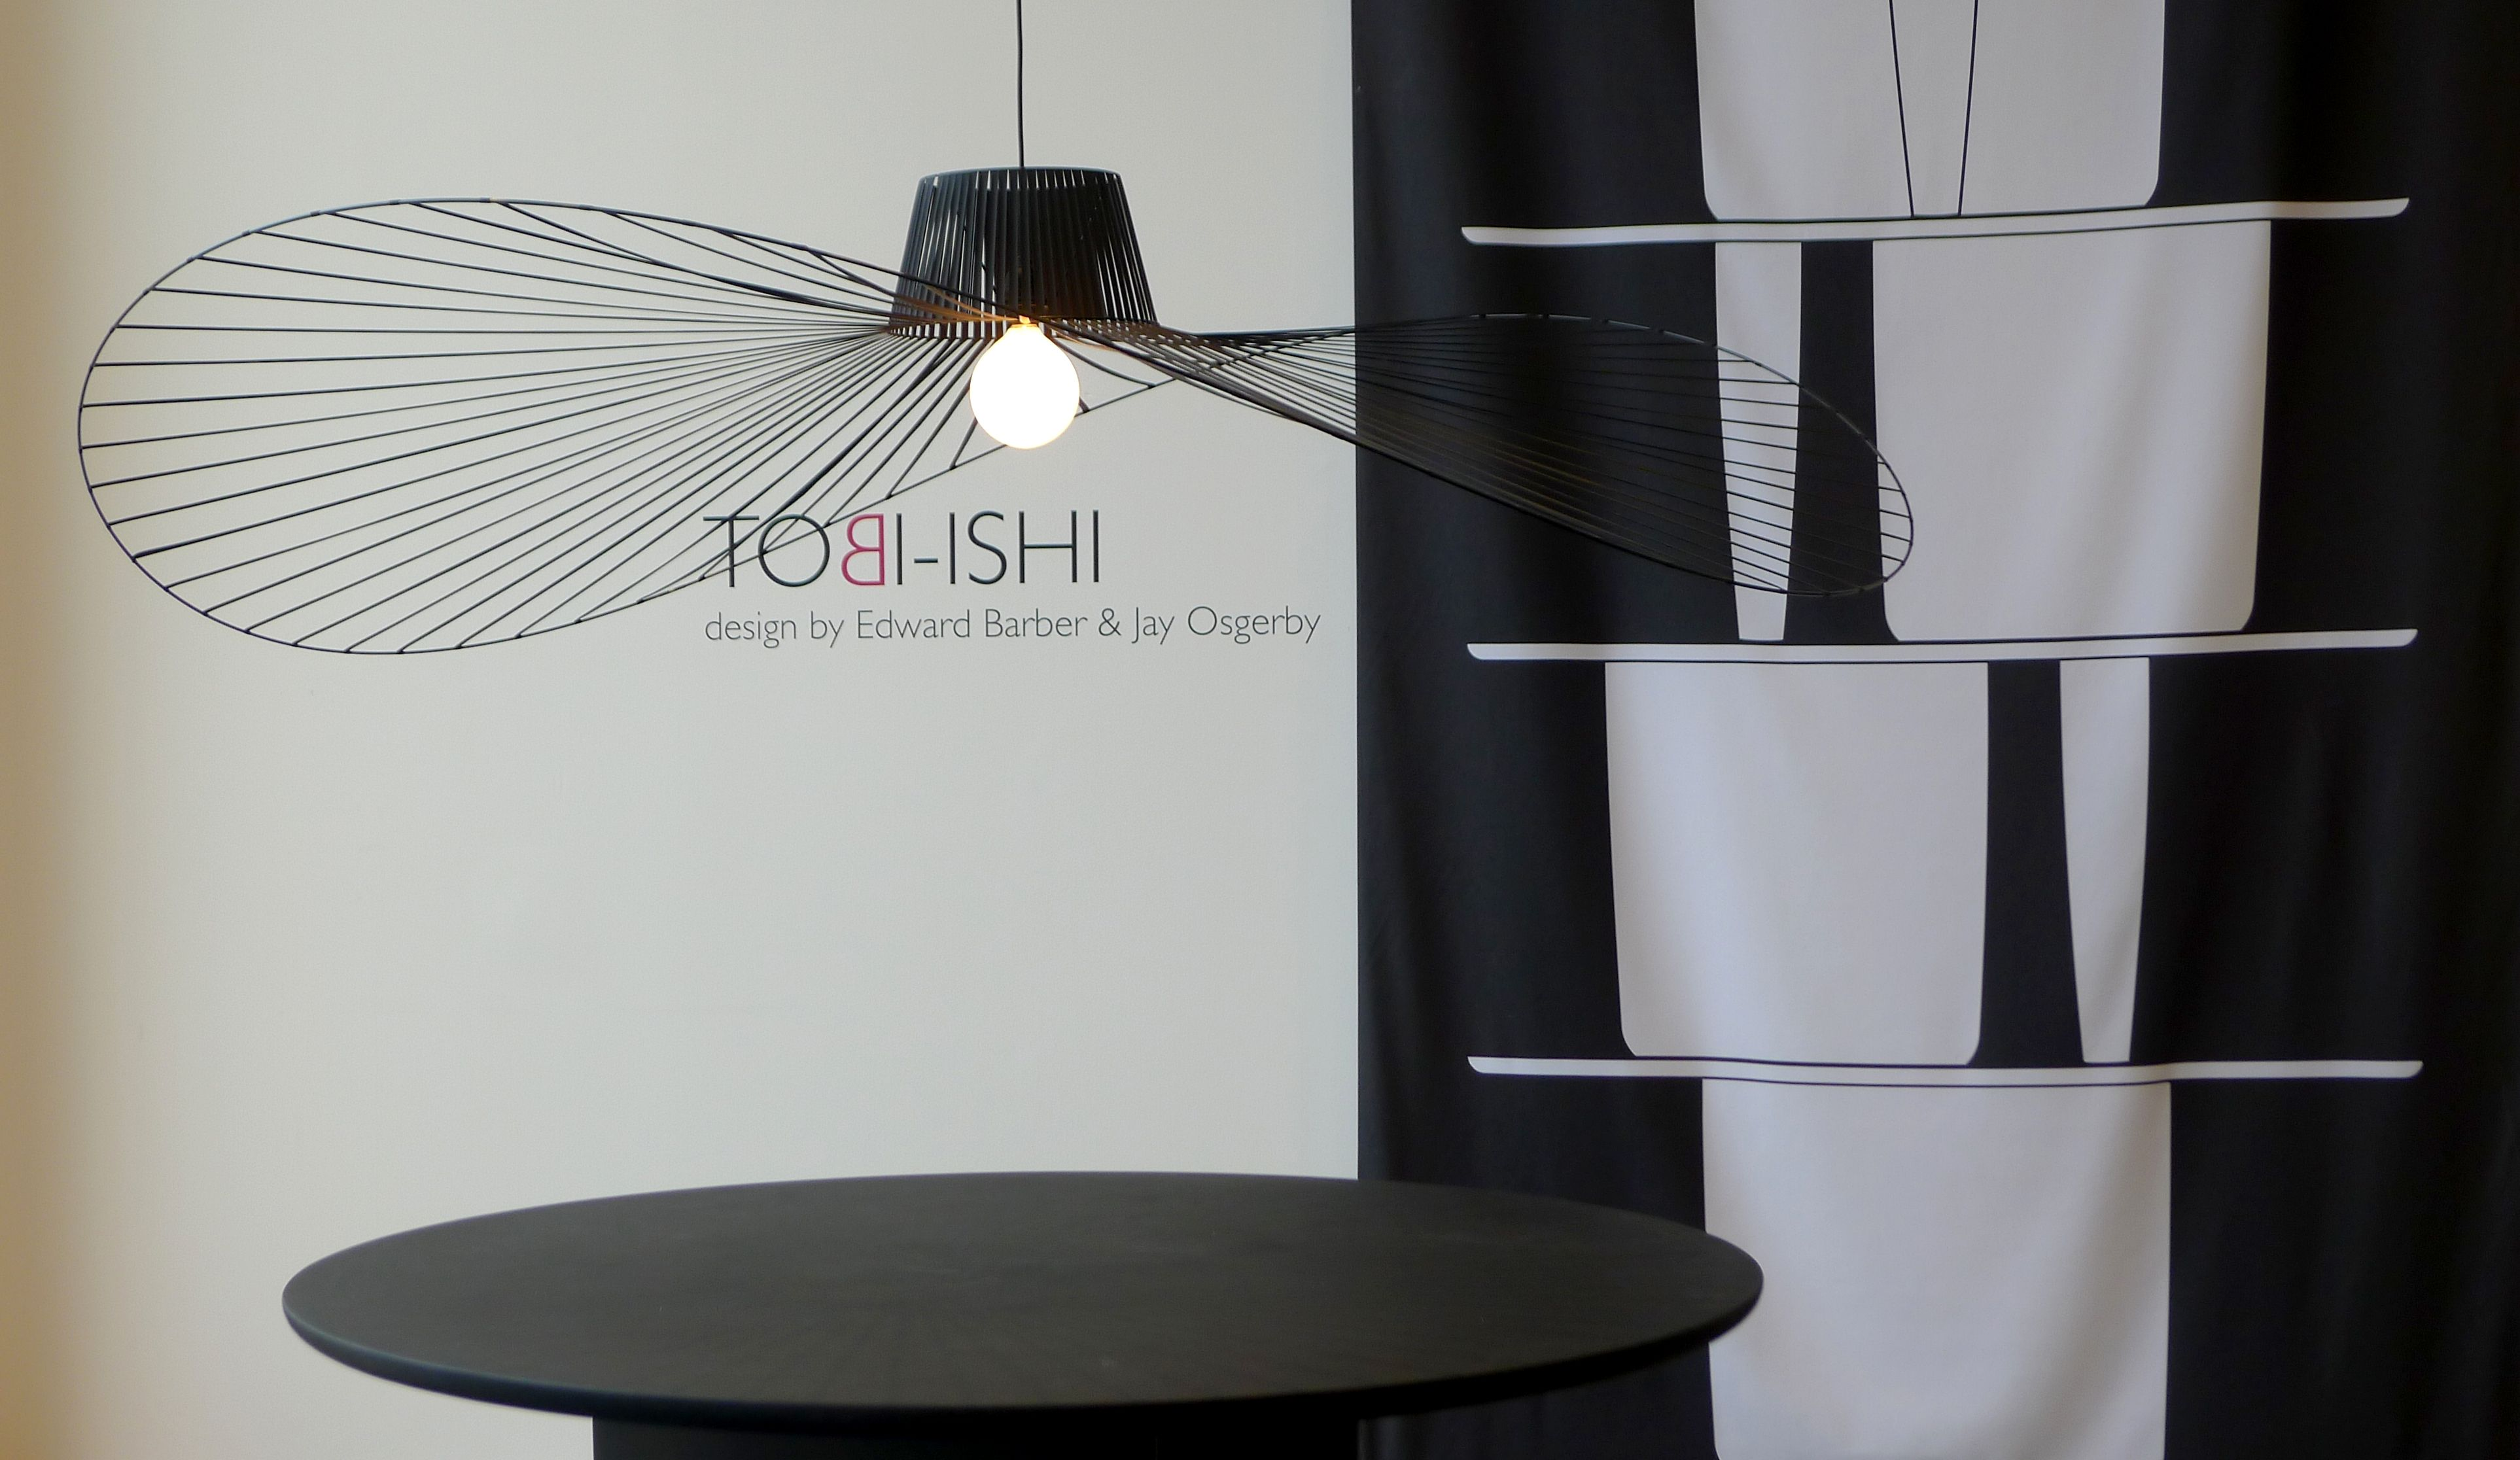 PREVIEW IN LONDON OF THE NEW TOBI ISHI MARBLE TABLES London Design Festival NEW TOBI ISHI MARBLE TABLES